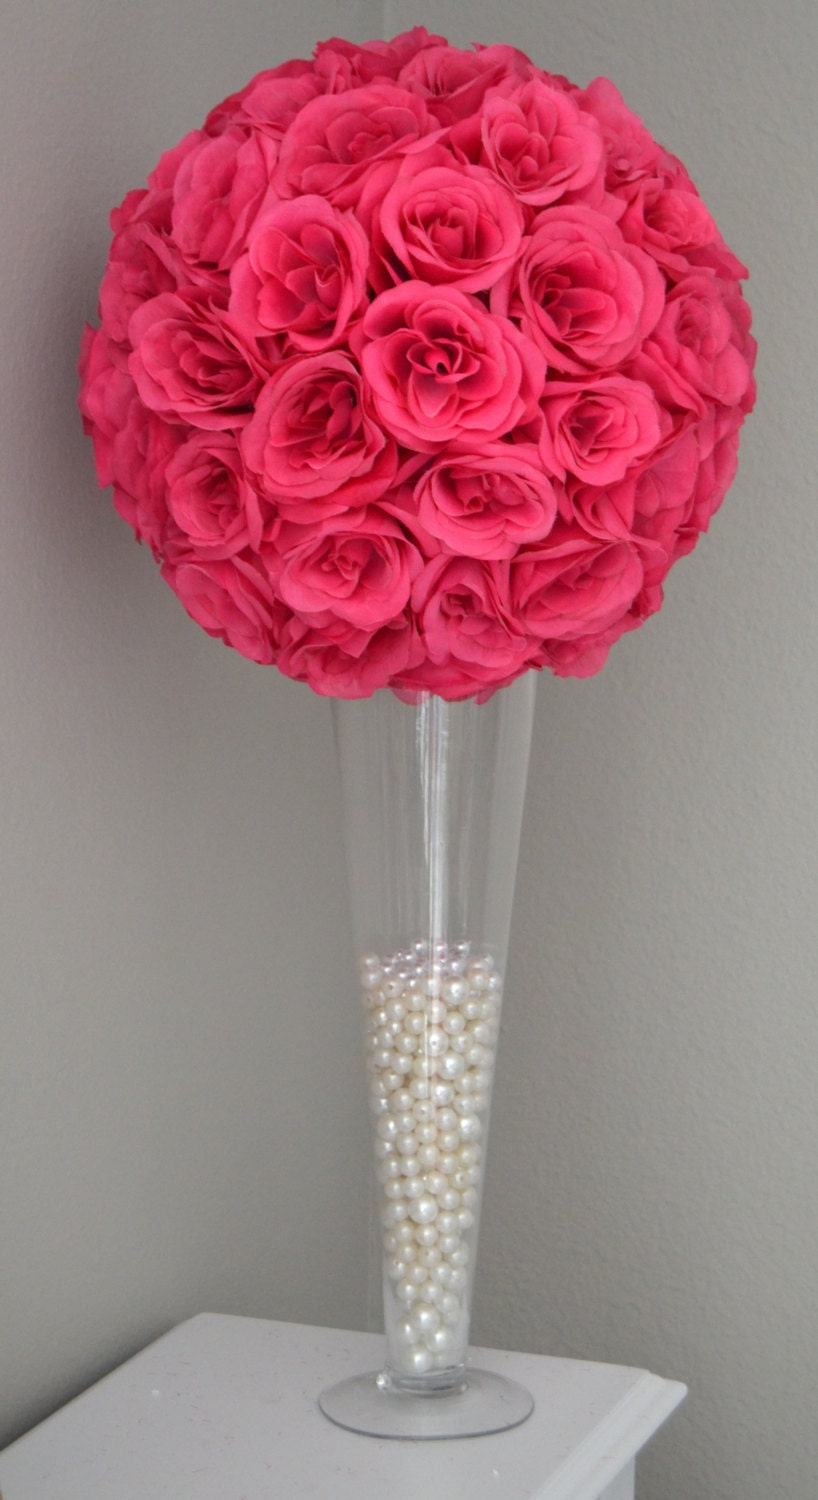 Fuchsia hot pink flower ball wedding centerpiece kissing